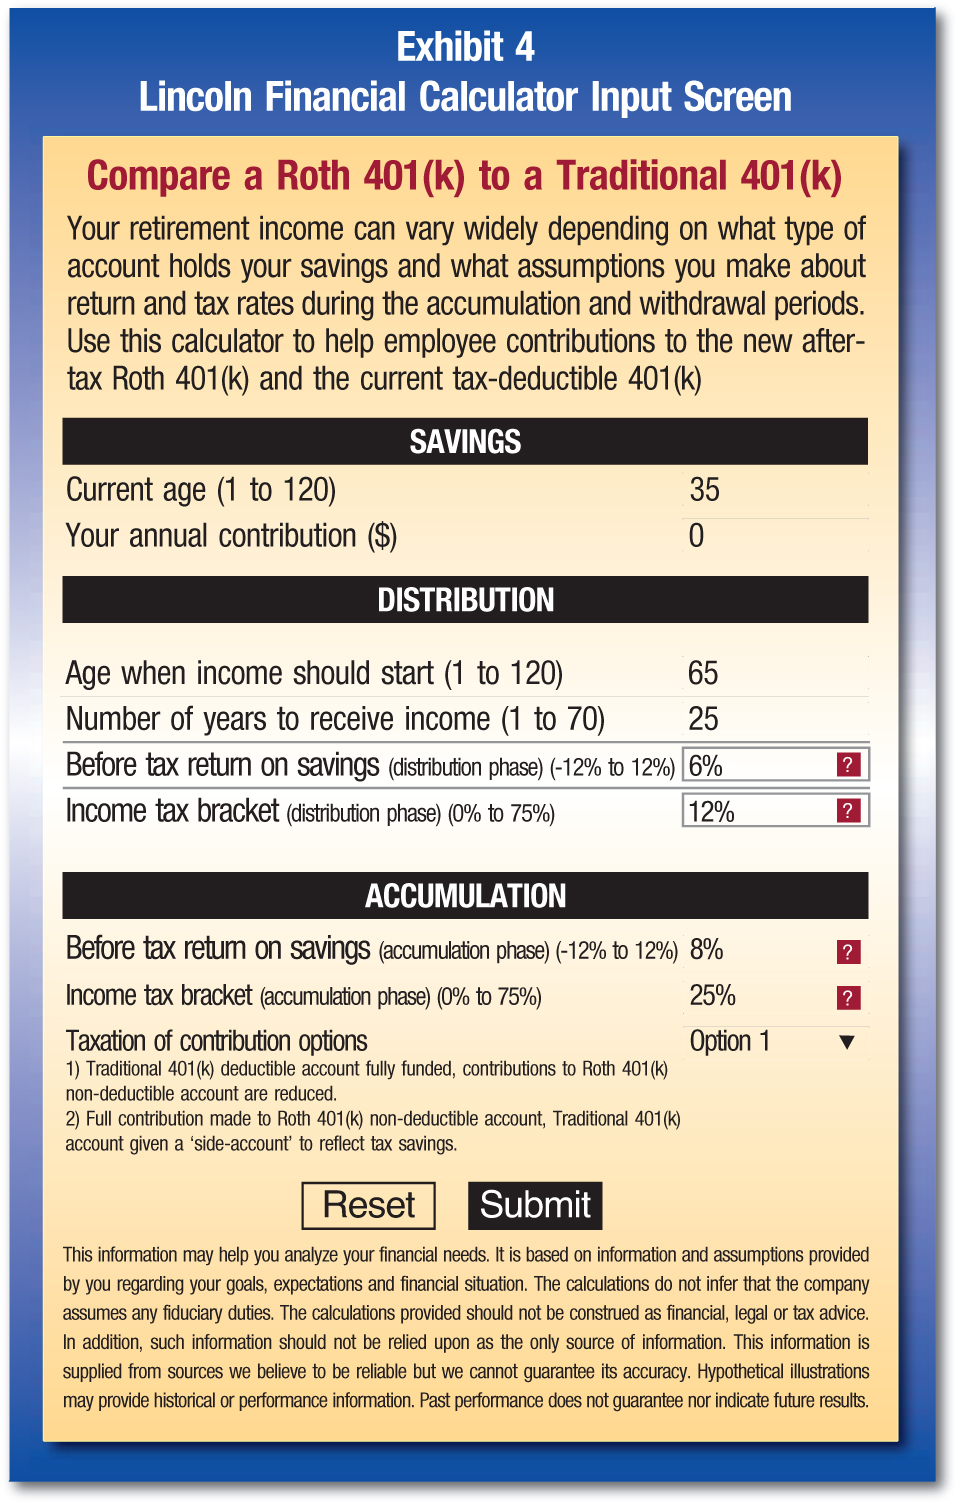 Compare a Roth 401(k) to a Traditional 401(k) Your retirement income can vary widely depending on what type of account holds your savings and what assumptions you make about return and tax rates during the accumulation and withdrawal periods. Use this calculator to help employee contributions to the new aftertax Roth 401(k) and the current tax-deductible 401(k) SAVINGS Current age (1 to 120); 35 Your annual contribution ($); 0 DISTRIBUTION Age when income should start (1 to 120); 65 Number of years to receive income (1 to 70); 25 Before tax return on savings (distribution phase) (-12% to 12%); 6%; ? Income tax bracket (distribution phase) (0% to 75%); 12%; ? ACCUMULATION Before tax return on savings (accumulation phase) (-12% to 12%); 8%; ? Income tax bracket (accumulation phase) (0% to 75%); 25%; ? Taxation of contribution options; Option 1 1) Traditional 401(k) deductible account fully funded, contributions to Roth 401(k) non-deductible account are reduced. 2) Full contribution made to Roth 401(k) non-deductible account, Traditional 401(k) account given a 'side-account' to reflect tax savings. Reset; Submit This information may help you analyze your financial needs. It is based on information and assumptions provided by you regarding your goals, expectations and financial situation. The calculations do not infer that the company assumes any fiduciary duties. The calculations provided should not be construed as financial, legal or tax advice. In addition, such information should not be relied upon as the only source of information. This information is supplied from sources we believe to be reliable but we cannot guarantee its accuracy. Hypothetical illustrations may provide historical or performance information. Past performance does not guarantee nor indicate future results.